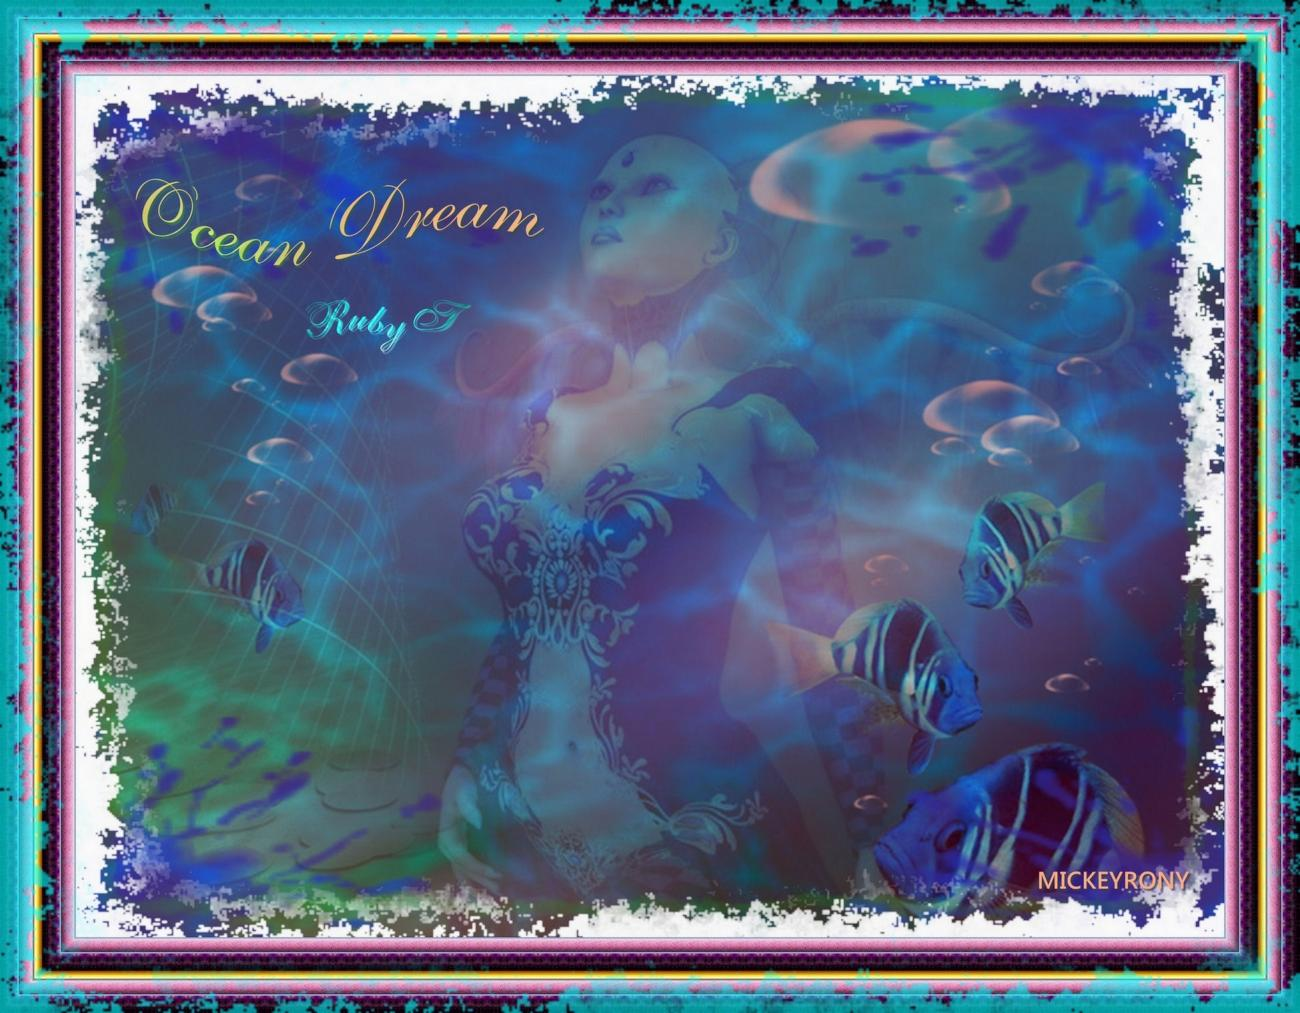 Ocean Dreams (Ruby T whit neon lights)